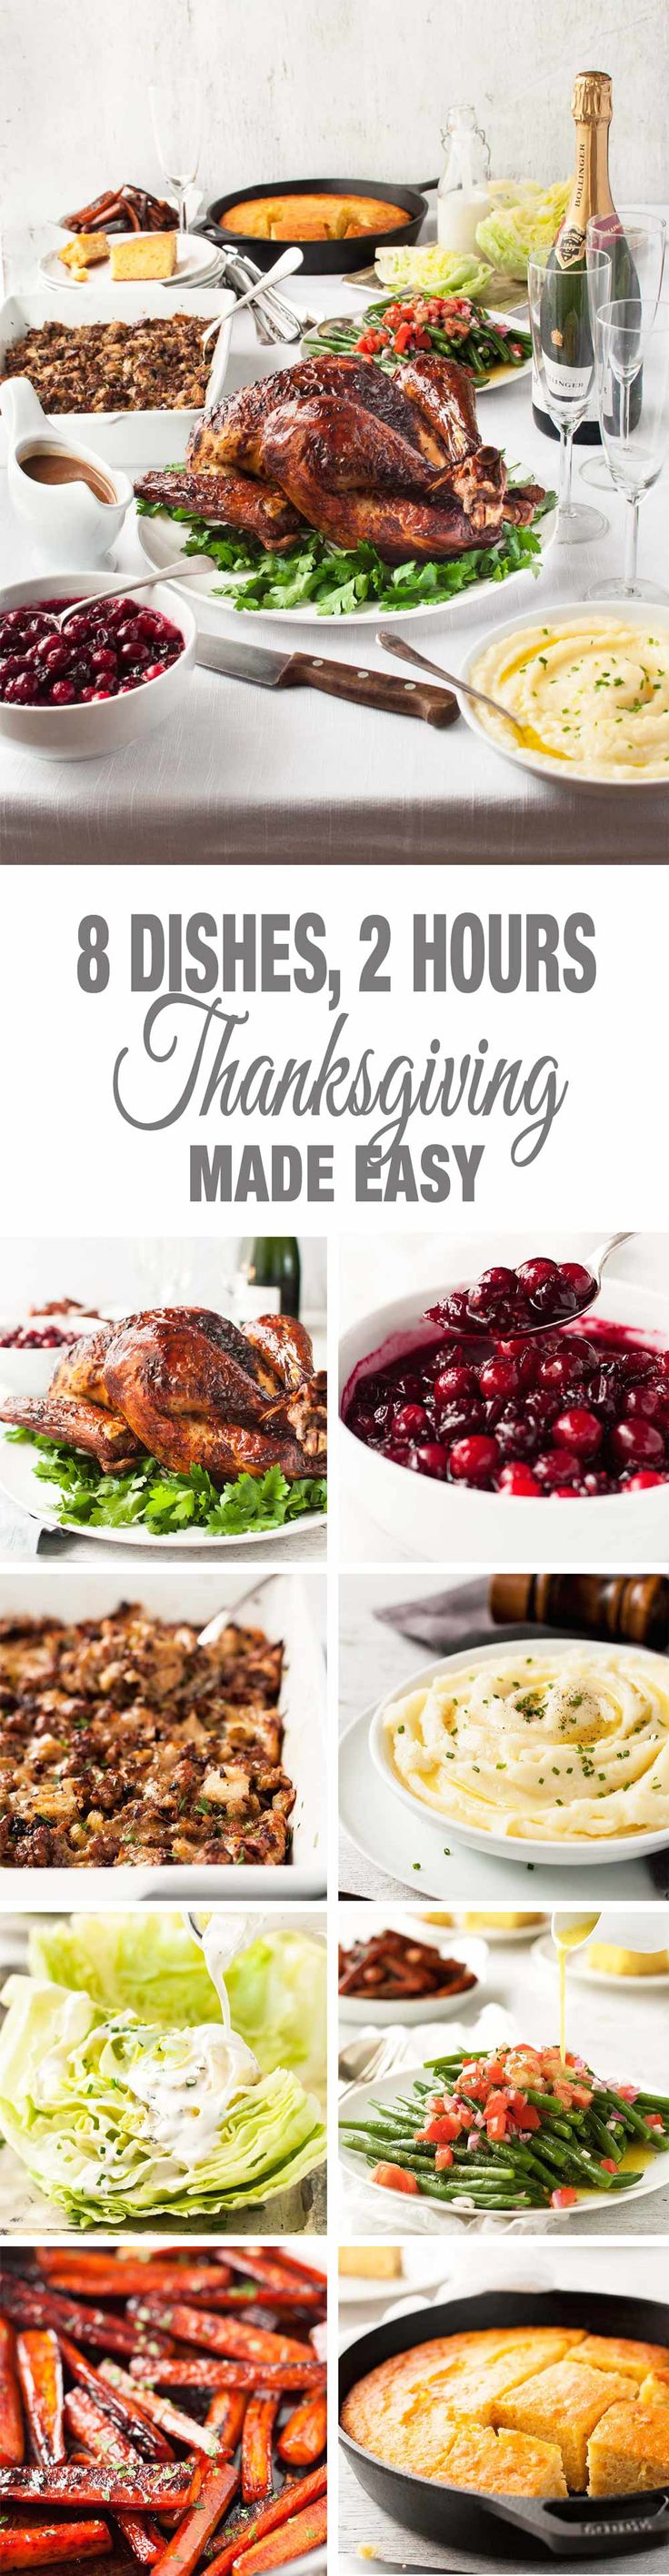 Make ahead mashed potatoes tip! Thanksgiving Menu - 8 dishes, 2 hours, largely make ahead